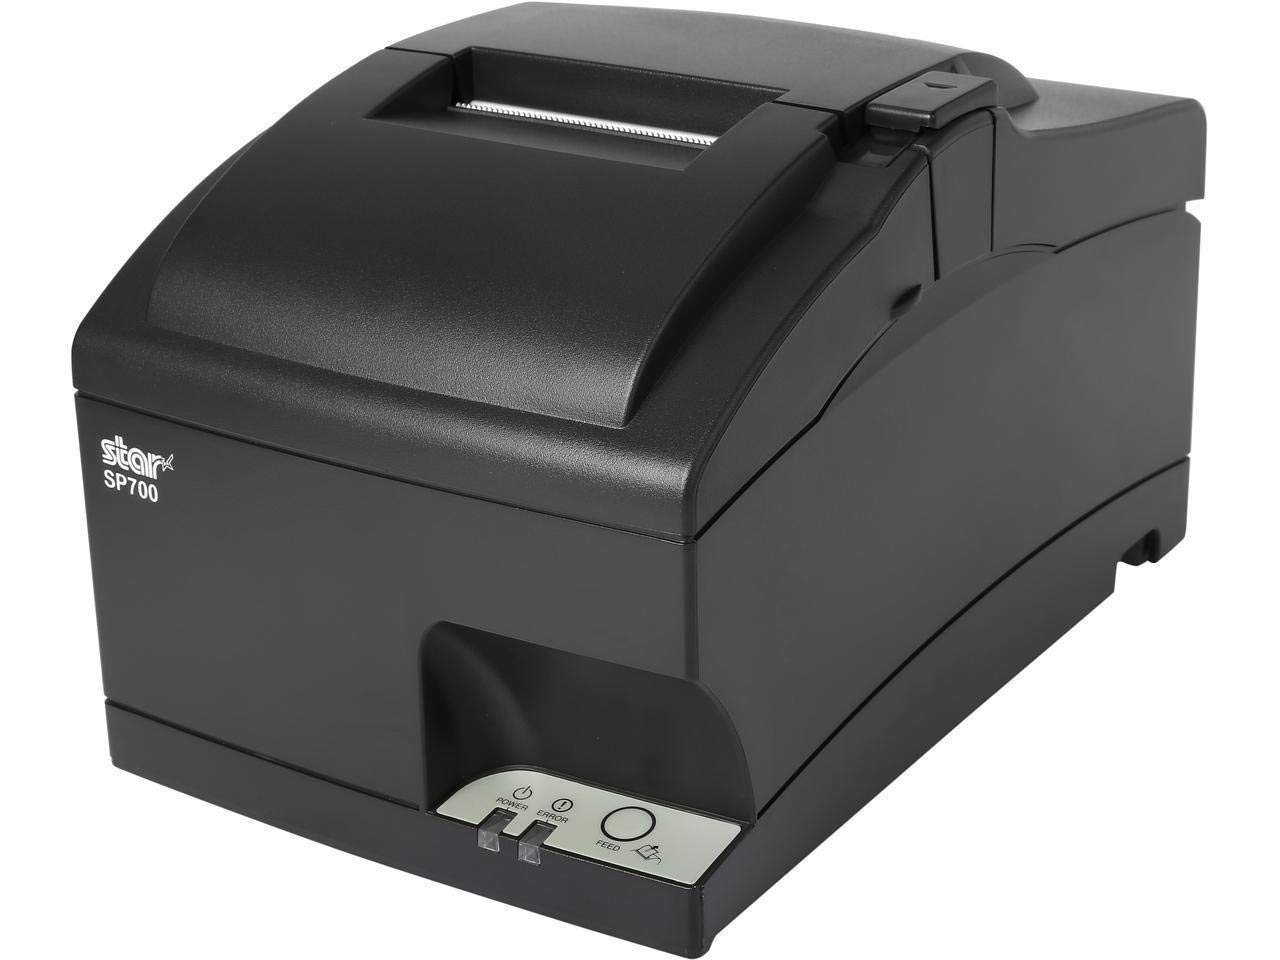 Square and Clover POS Register Kitchen Receipt Printer - SP742ML, SP700 Ethernet, Impact, Auto Cutter, Power Supply and Cables Included (Renewed)